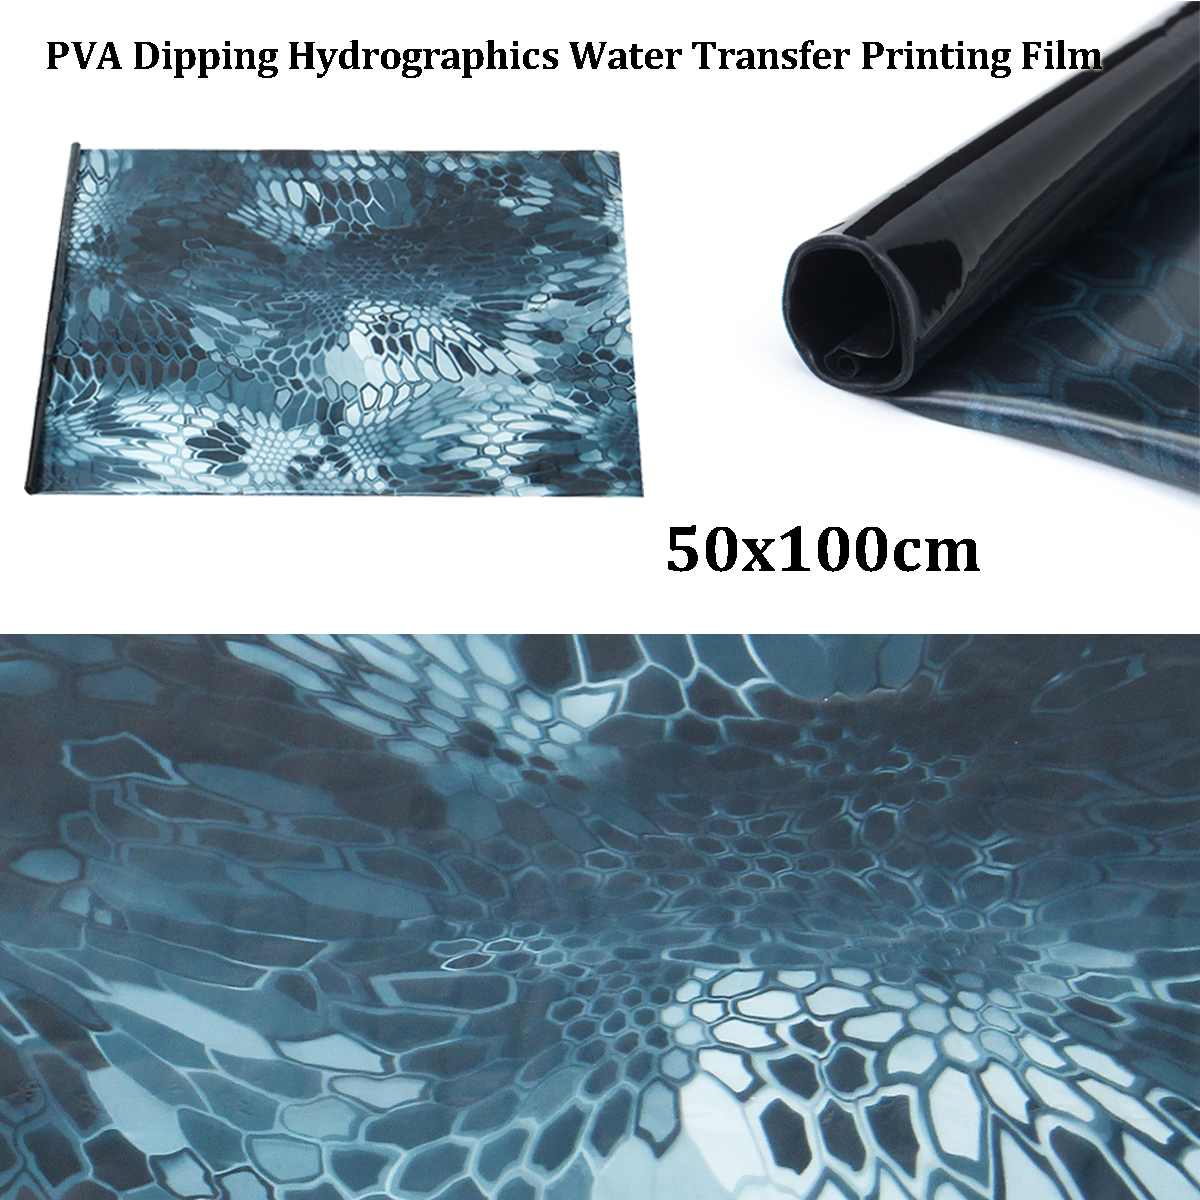 50x150cm Blue PVA Hydrographic Film Water Transfer Printing Film Hydro Dip Style Decals Stickers